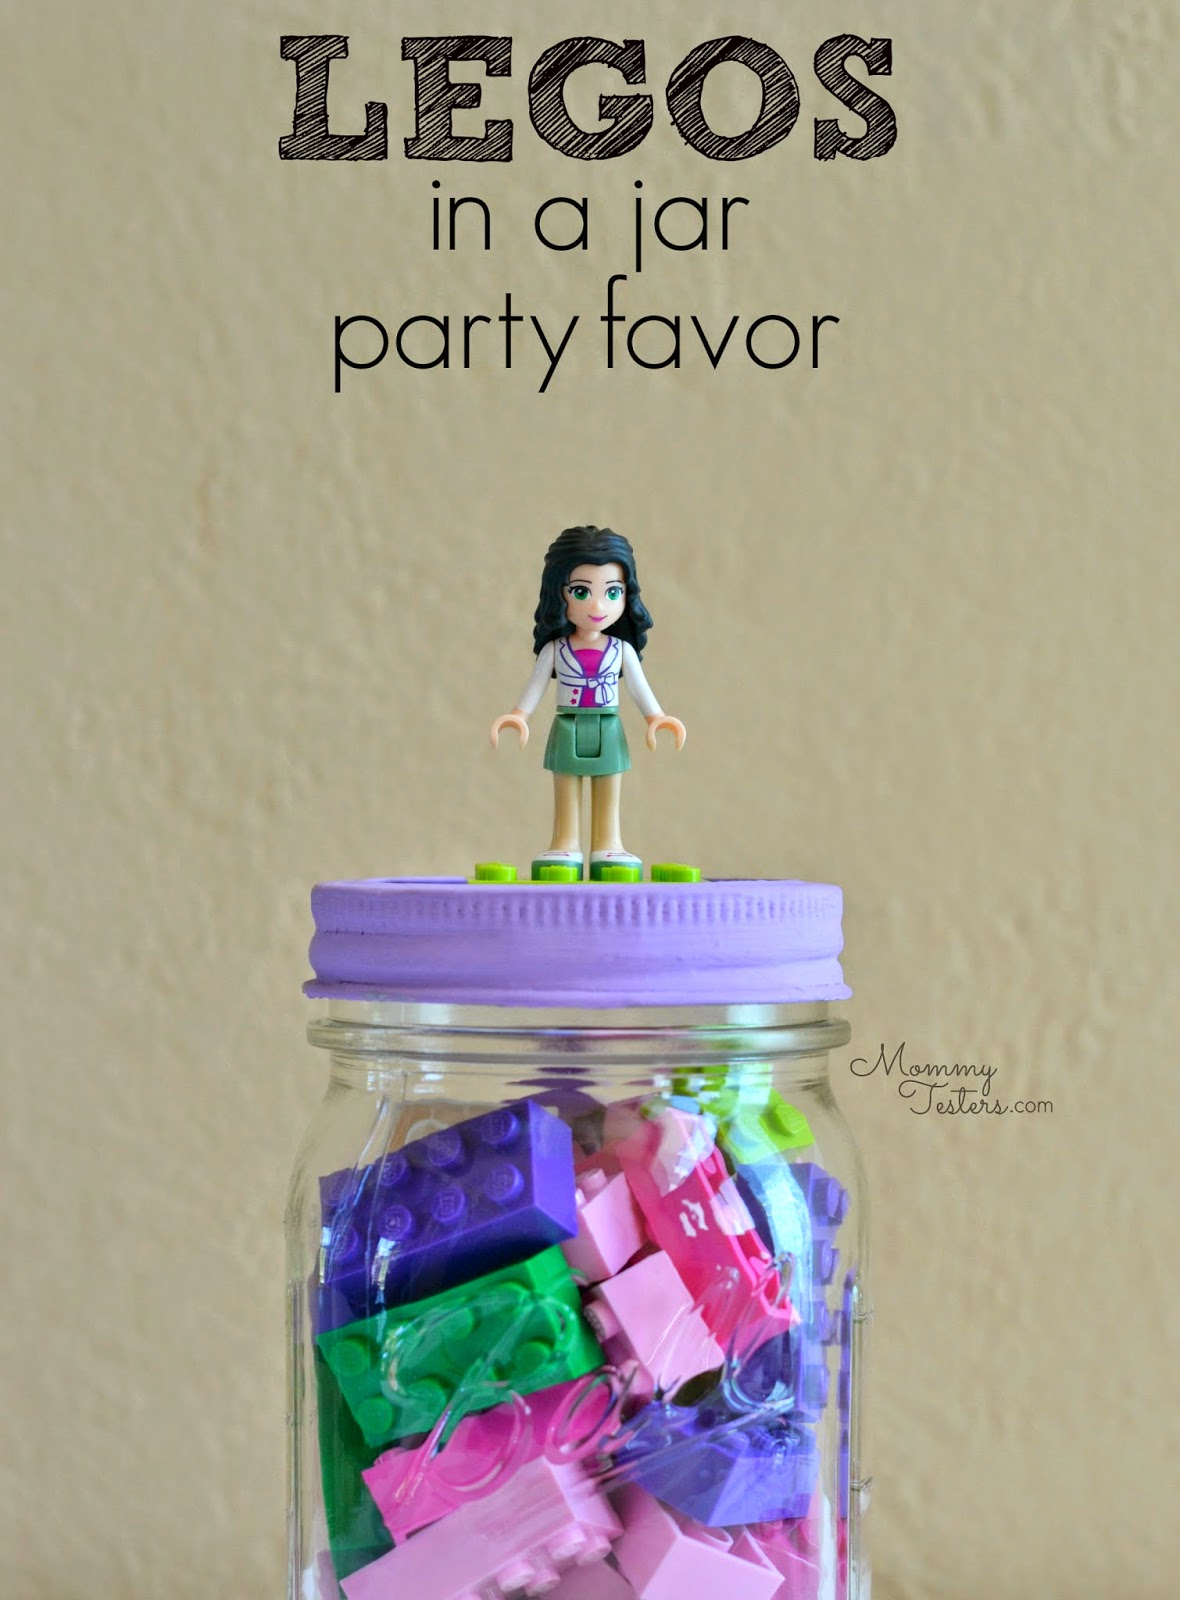 Mommy Testers, LEGO party favor, LEGOS in a jar, LEGO birthday party, LEGO party, LEGO Friends party